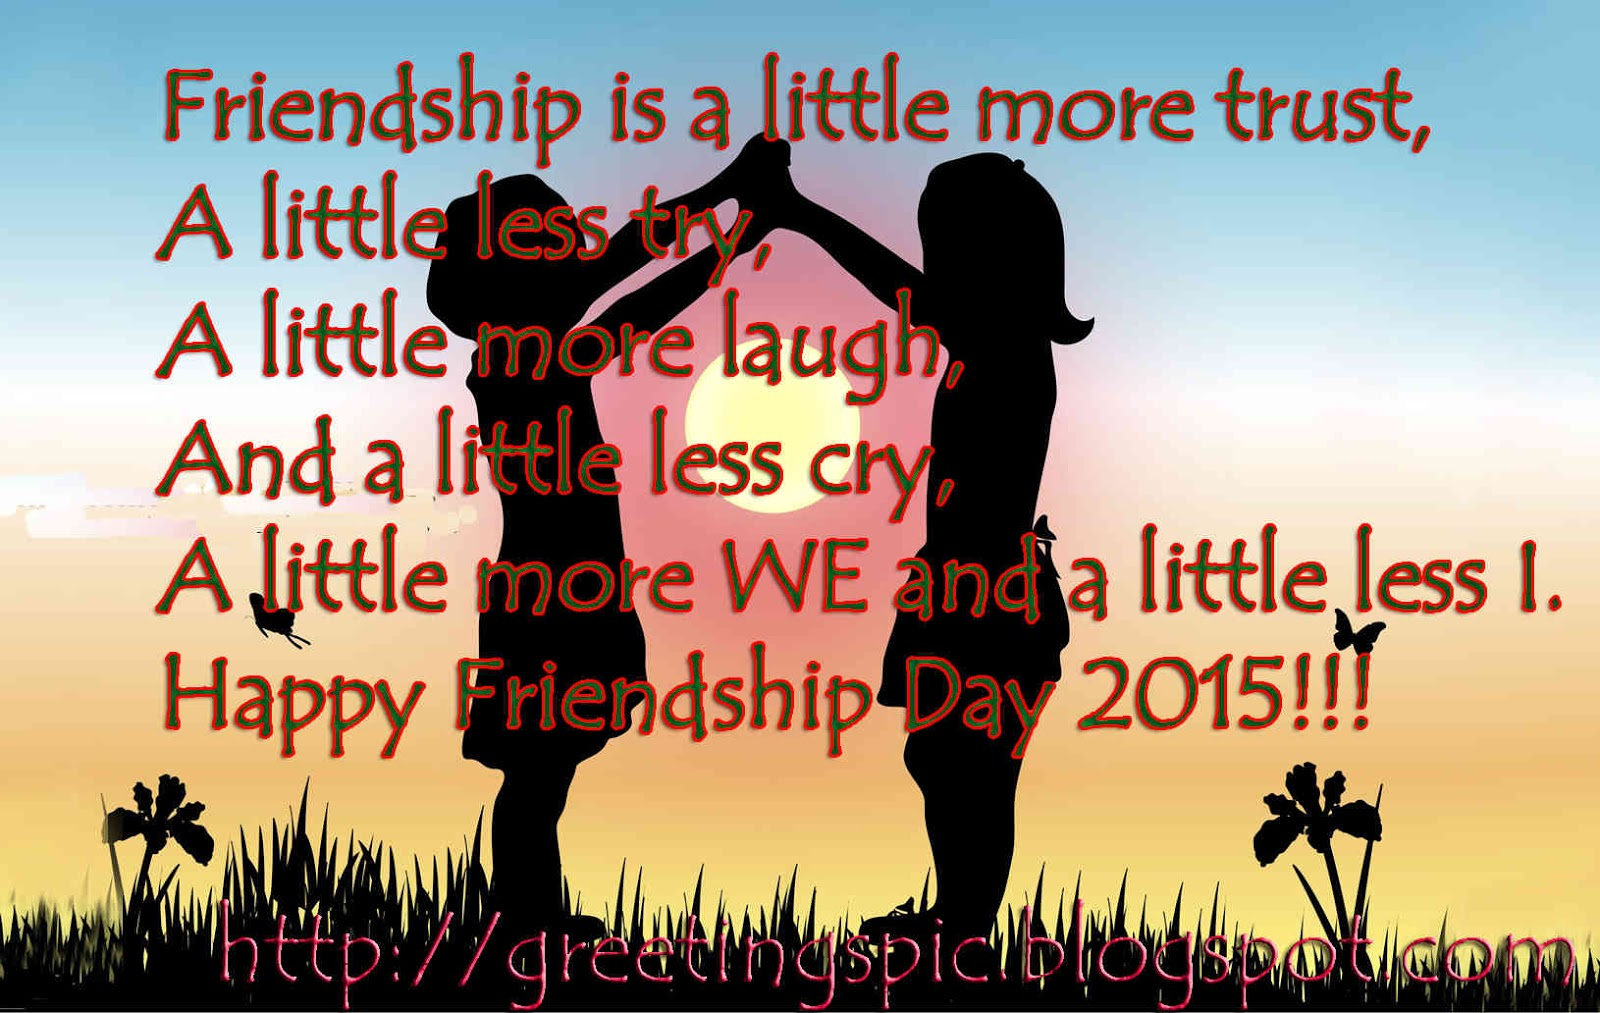 Friendship day quotes with photos ~ Greetings Wishes Images Happy Friends Quotes